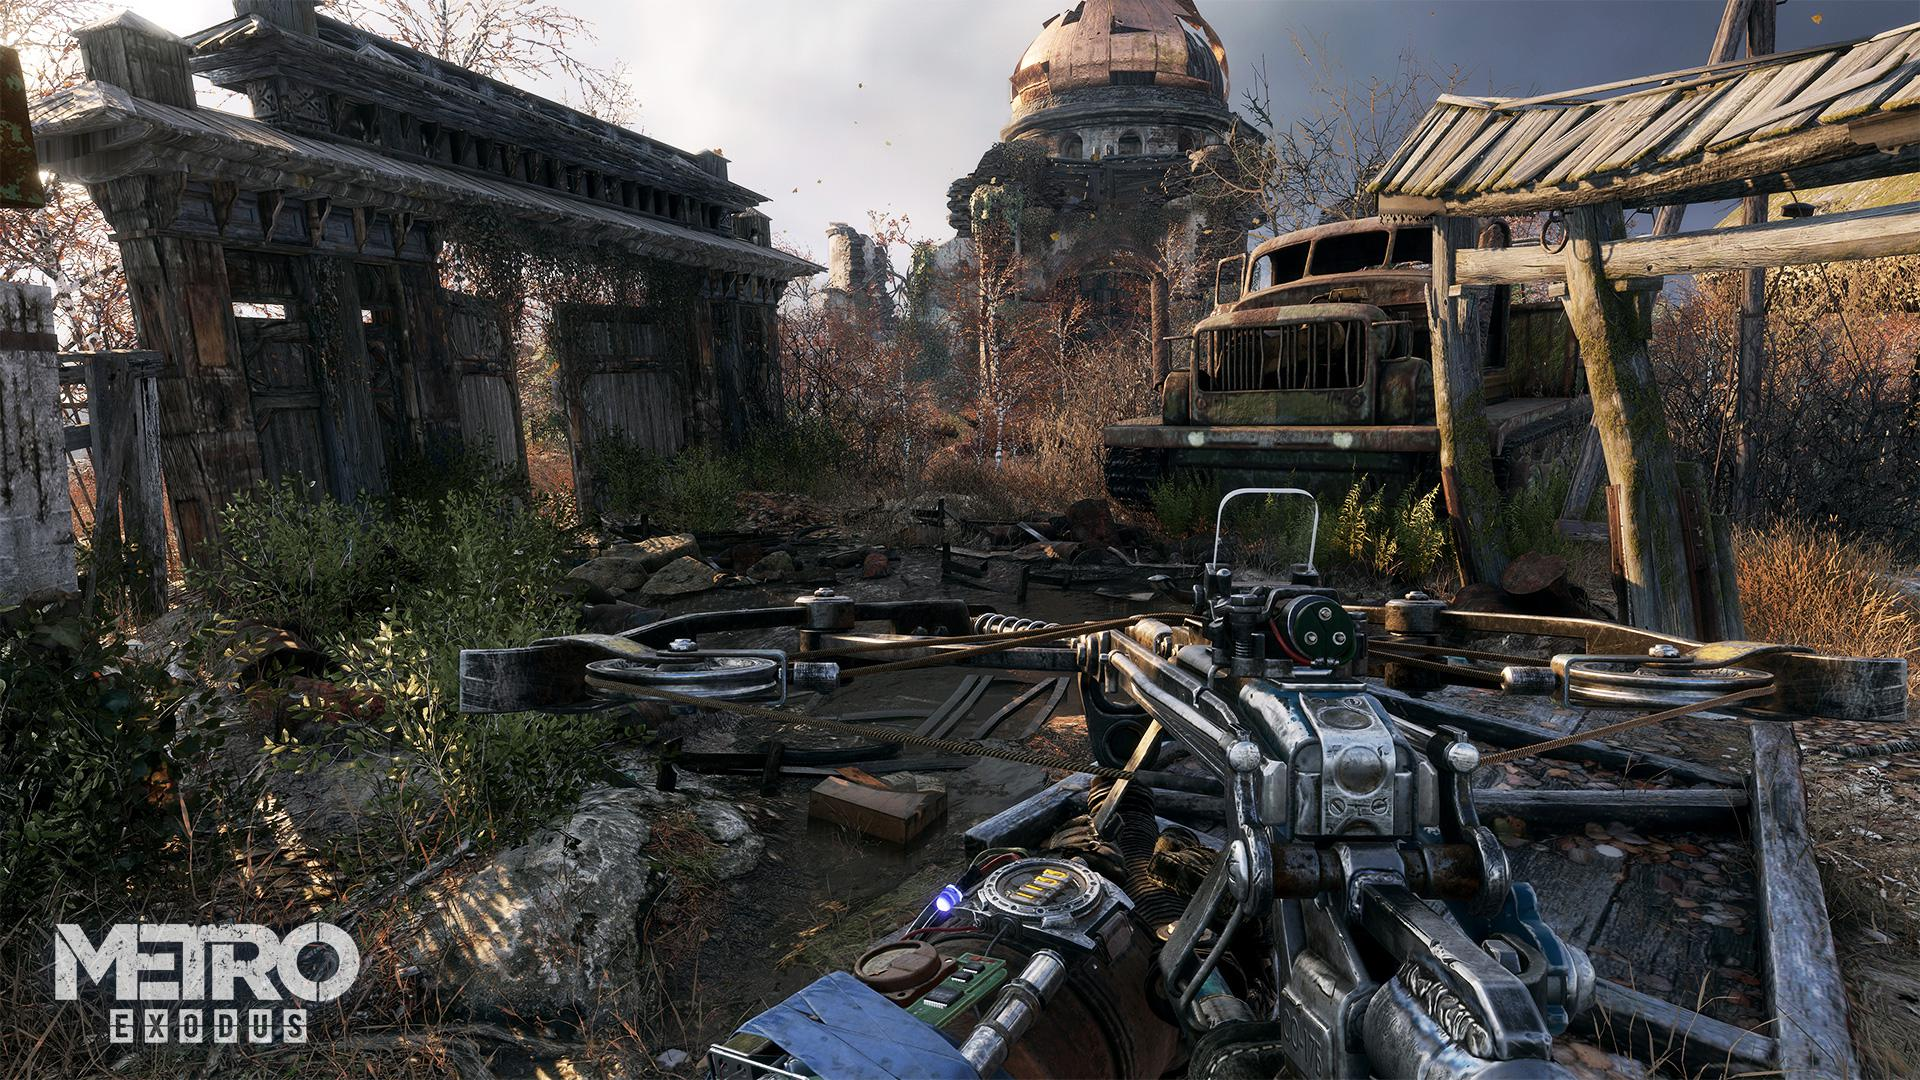 Metro Exodus will be one the year's best looking games